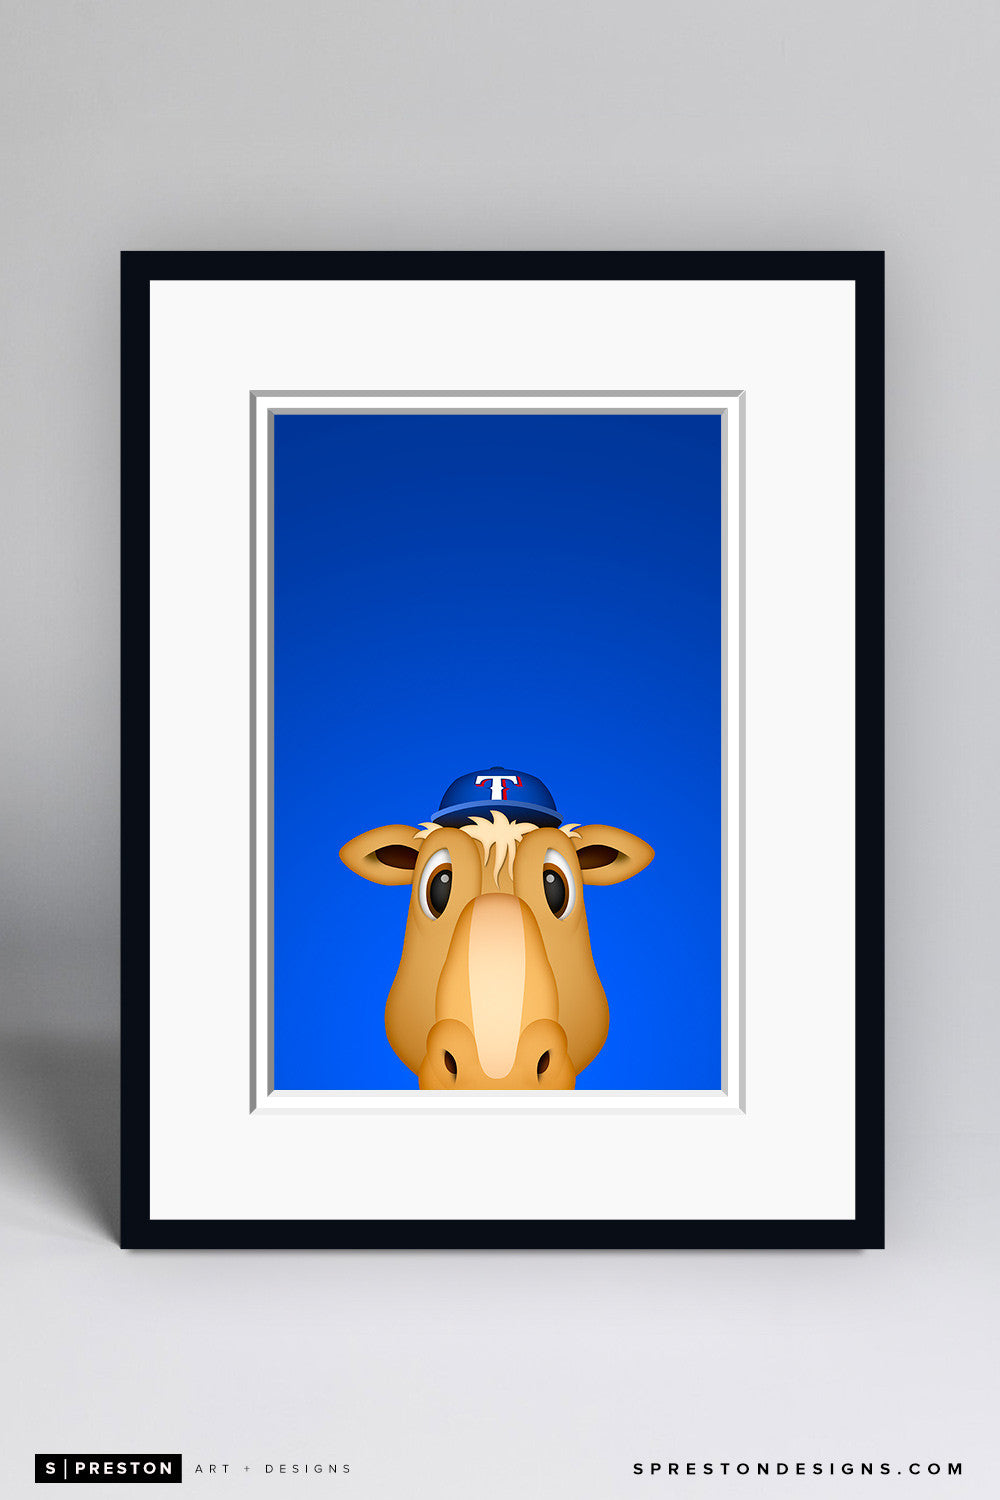 Minimalist Ranger Captain Art Print - Texas Rangers - S. Preston Art + Designs